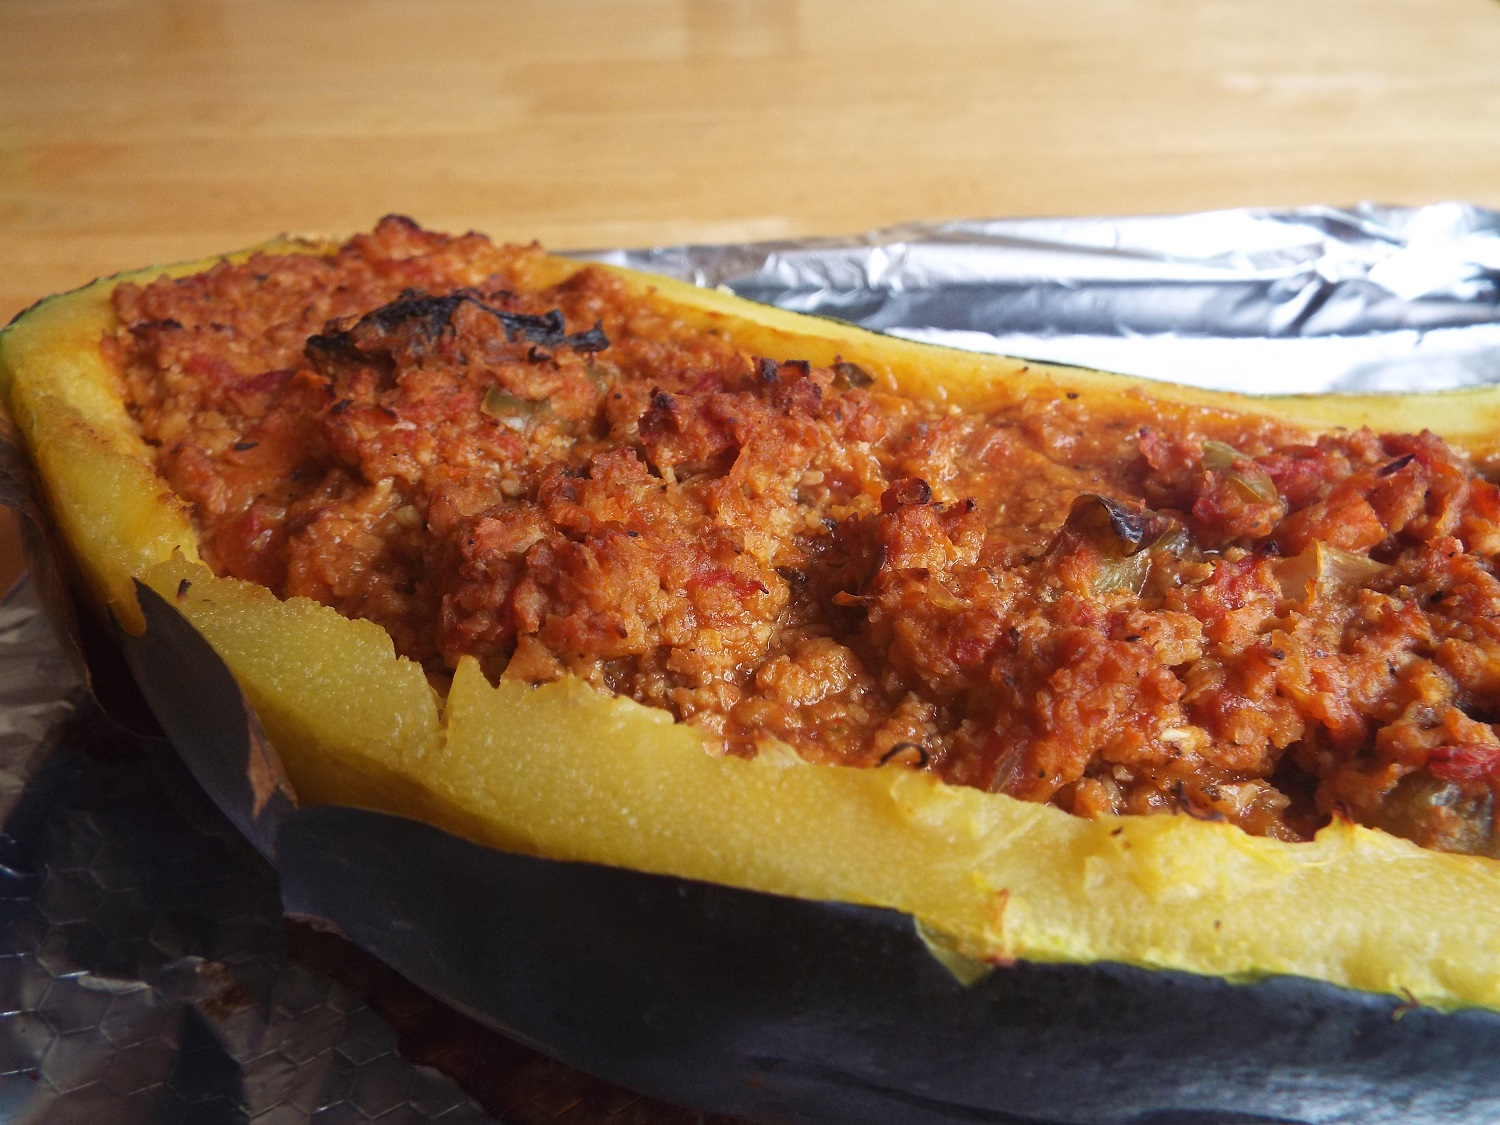 Marrow stuffed with Vegan Bolognese - I've chosen marrow because they're cheap in summer (and I grow them!), but you can also use squashes or aubergines (egg plants), or big baked sweet potatoes or regular potatoesSlice the marrow length-ways and scoop out seeds. Bake for 30 minutes. Fill with vegan bolognese mixture and bake again for 20-30 minutes. Serve hot.Vegan;vegetarian; health-aware